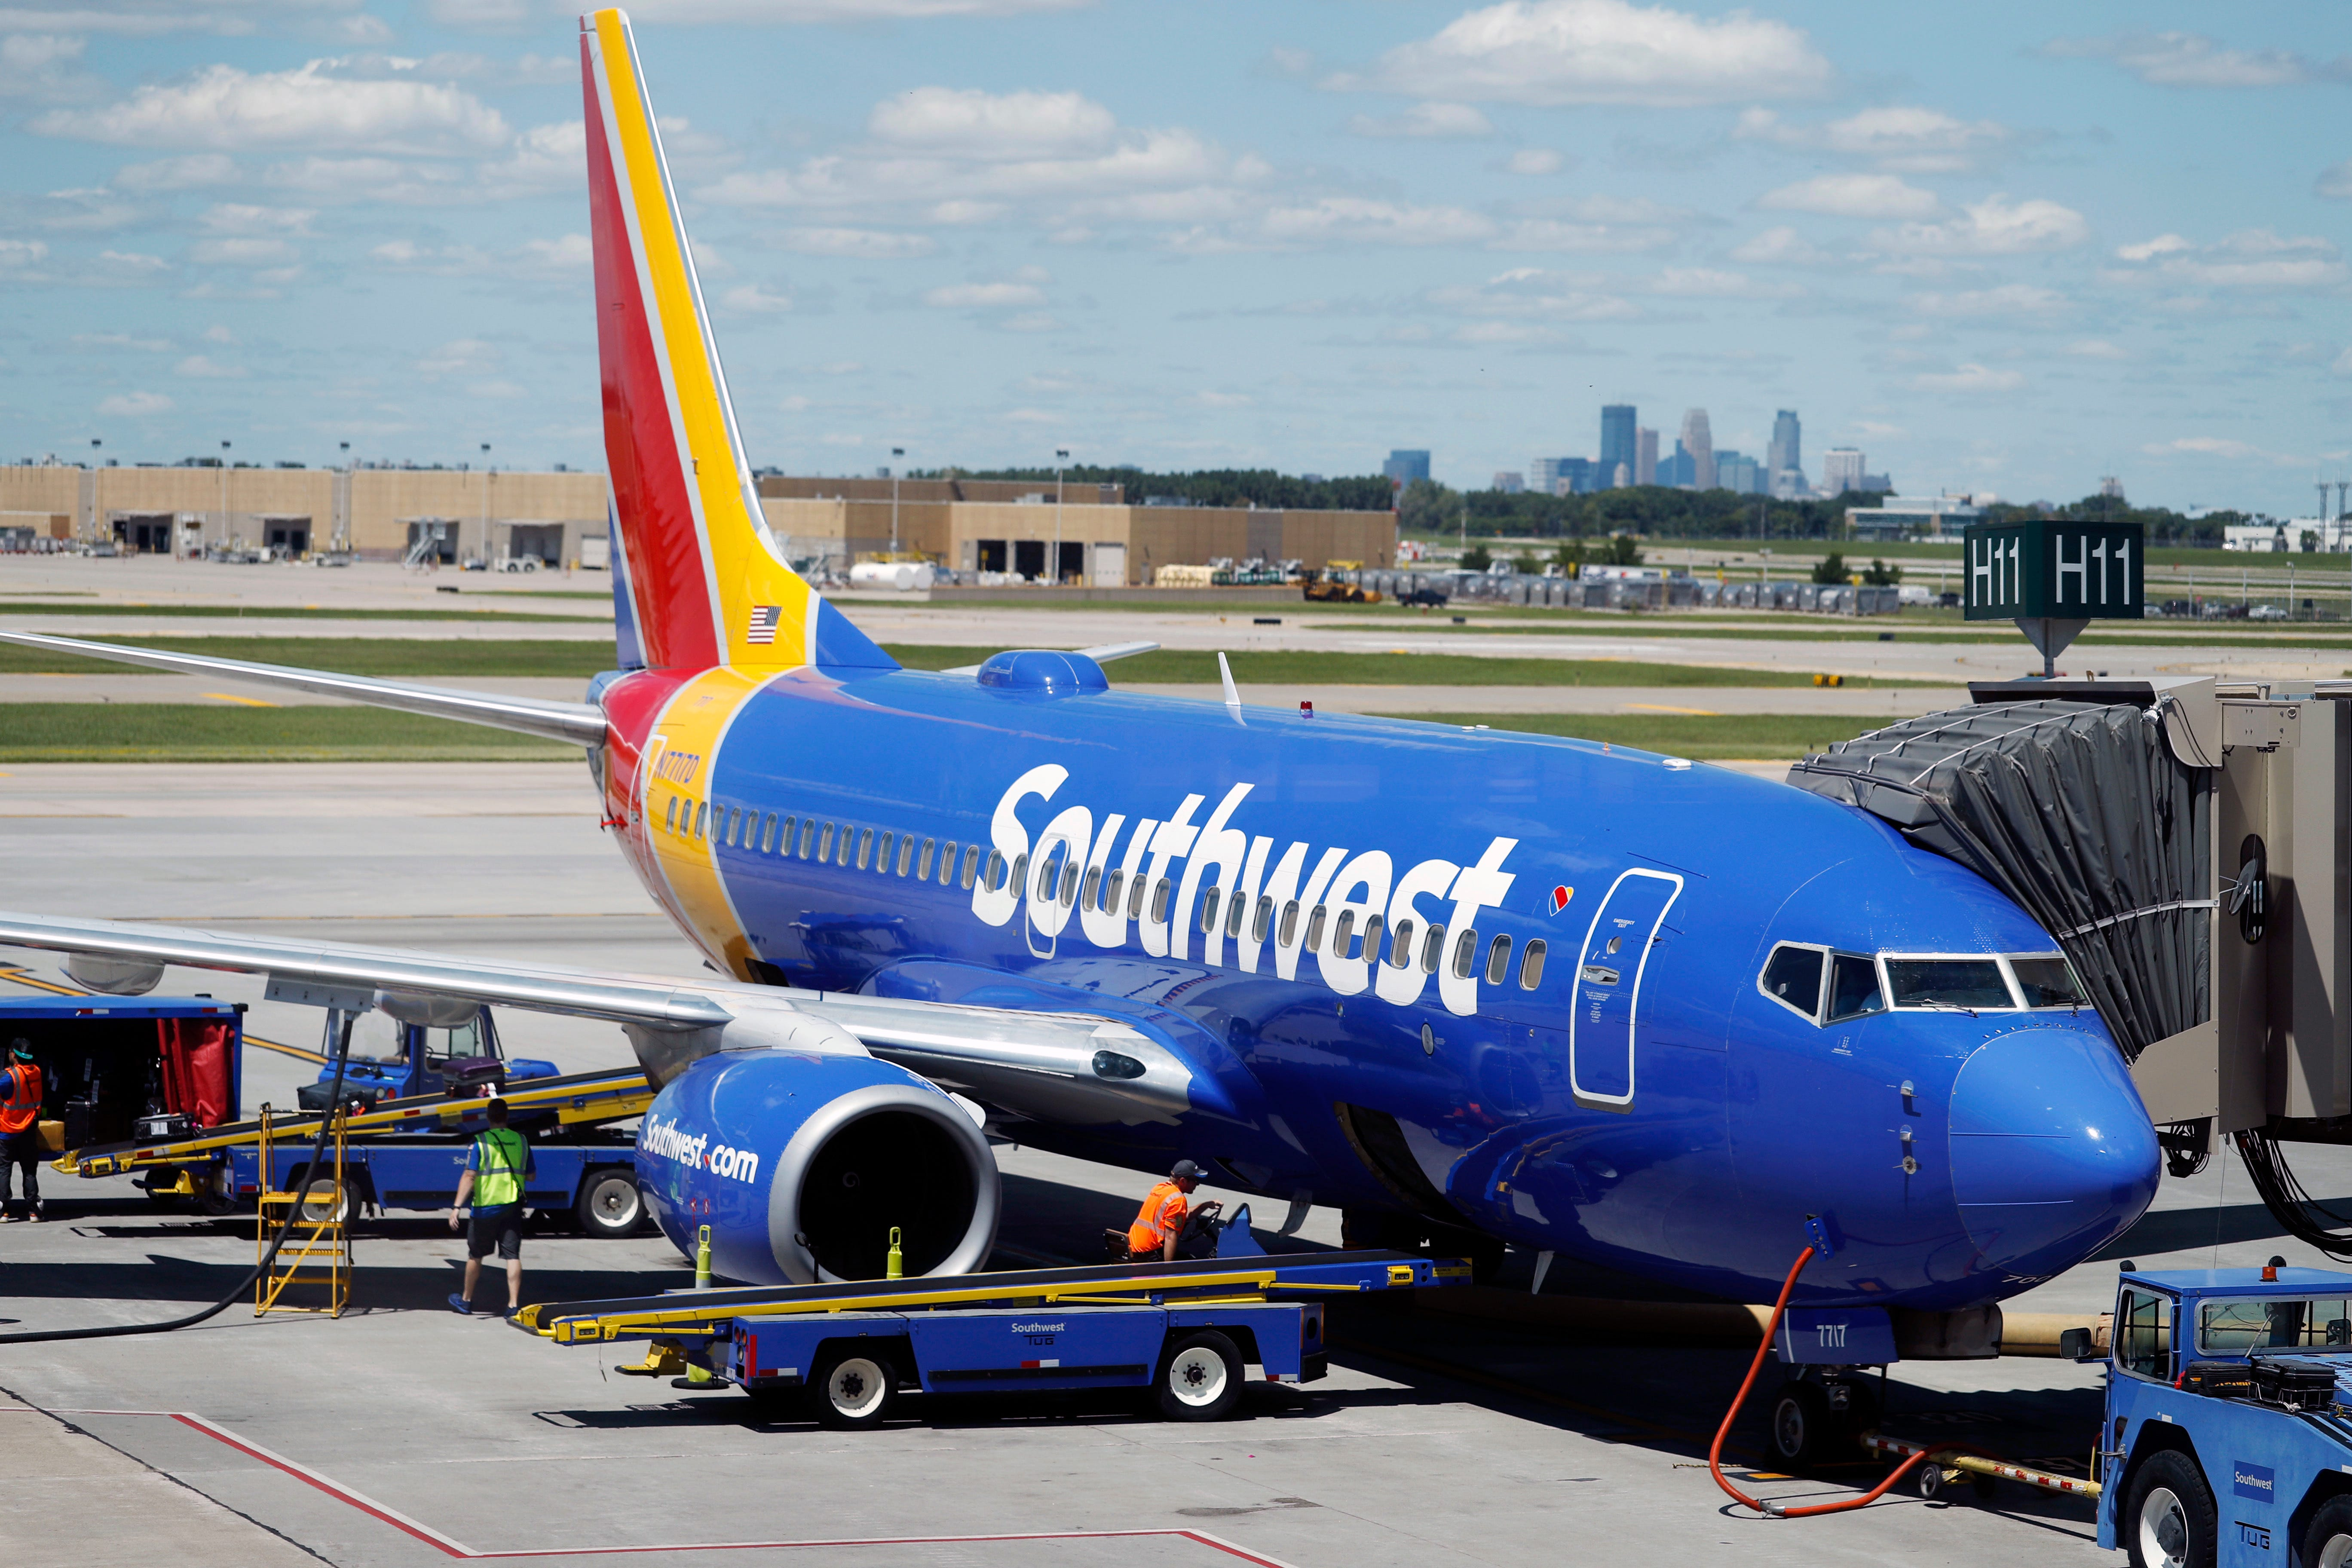 College student: Southwest Airlines made me abandon pet fish at airport